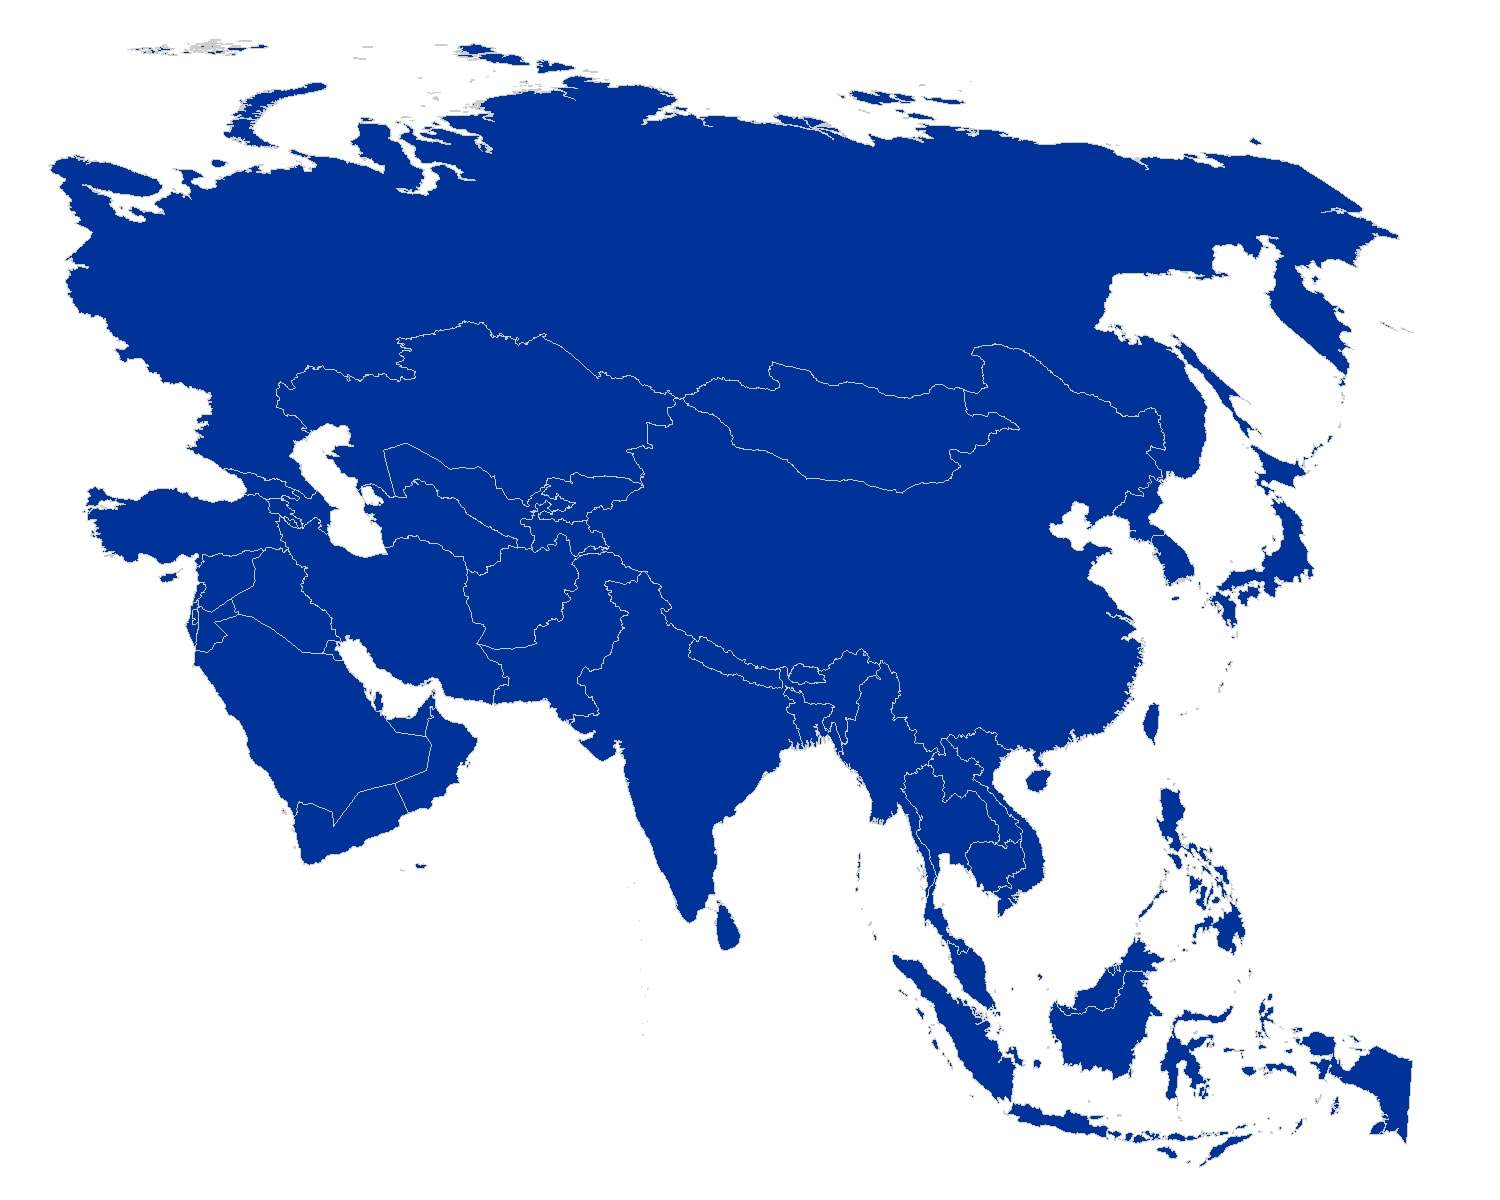 asia_map Google Driving Map And Directions on maps history google, maps maps google, maps satellite view google, maps get directions,